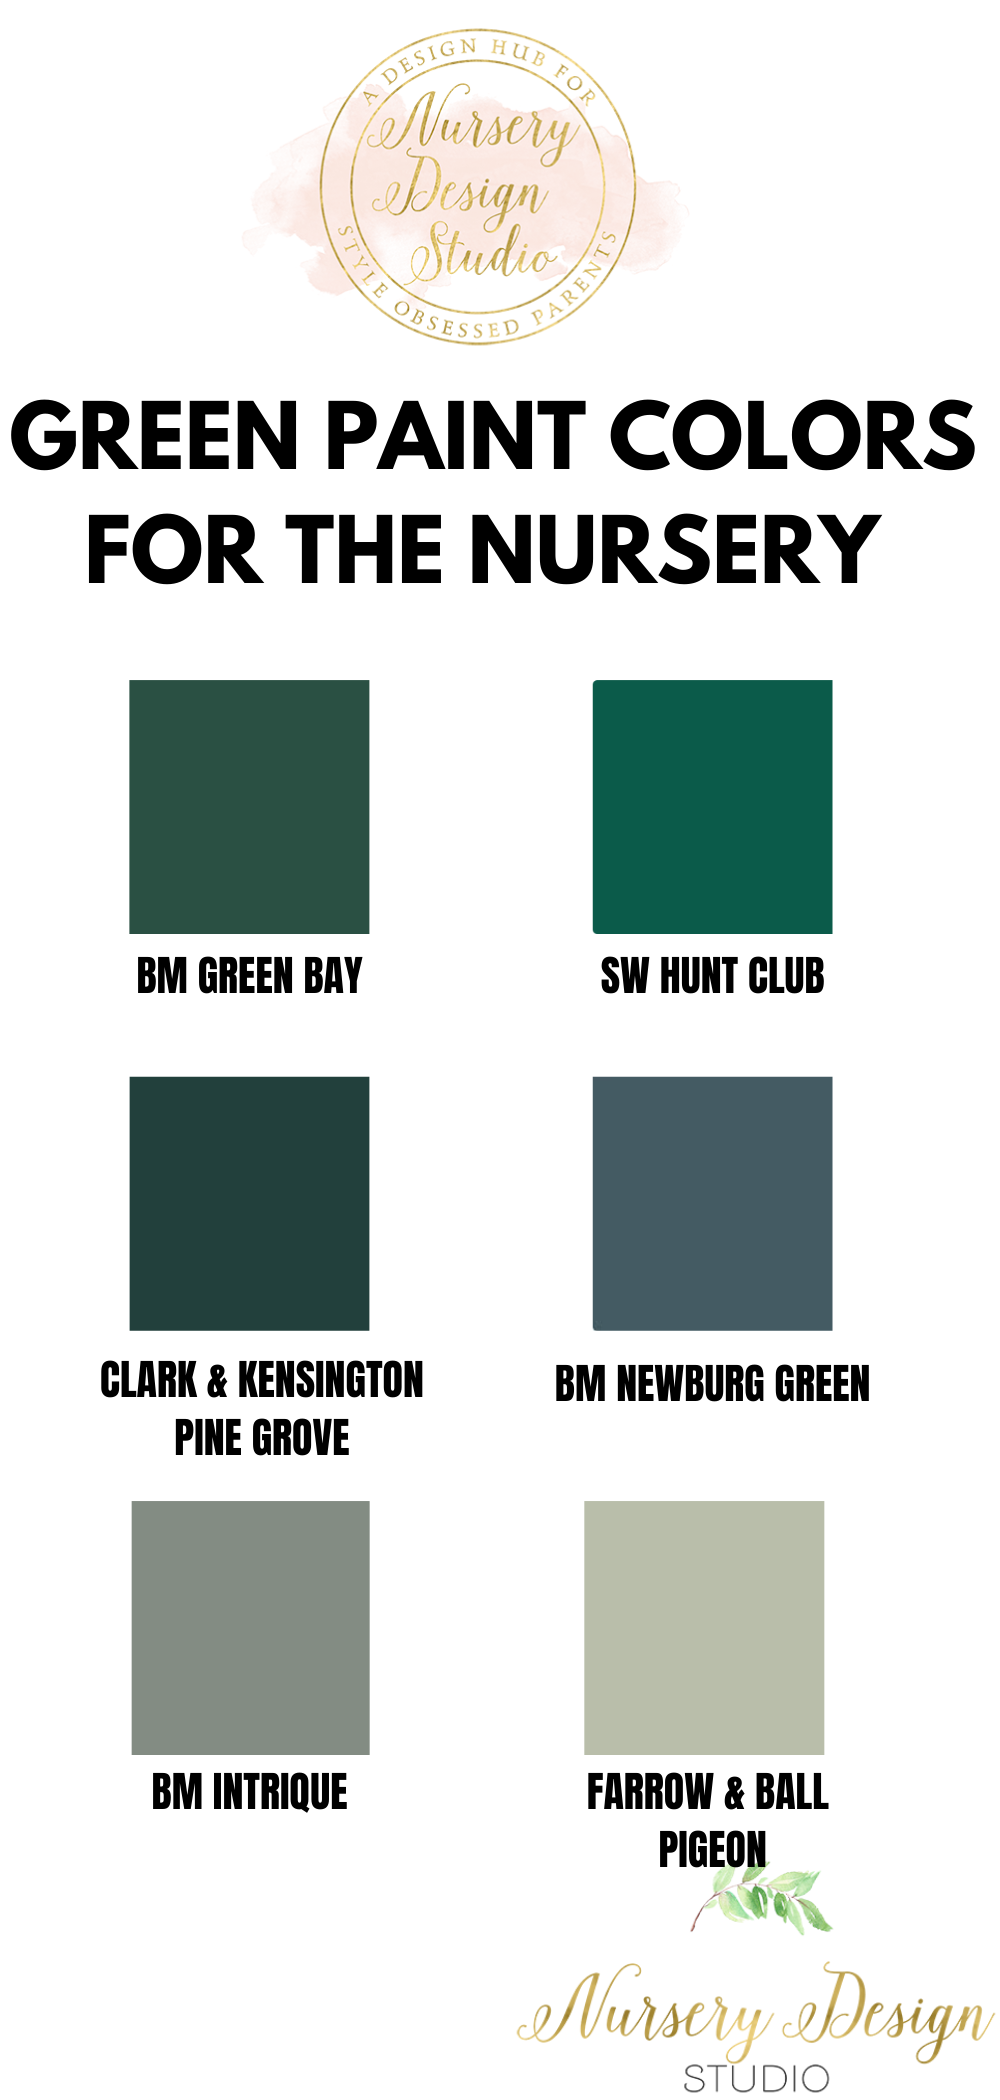 BEST GREEN PAINT COLORS FOR THE NURSERY BABY'S ROOM